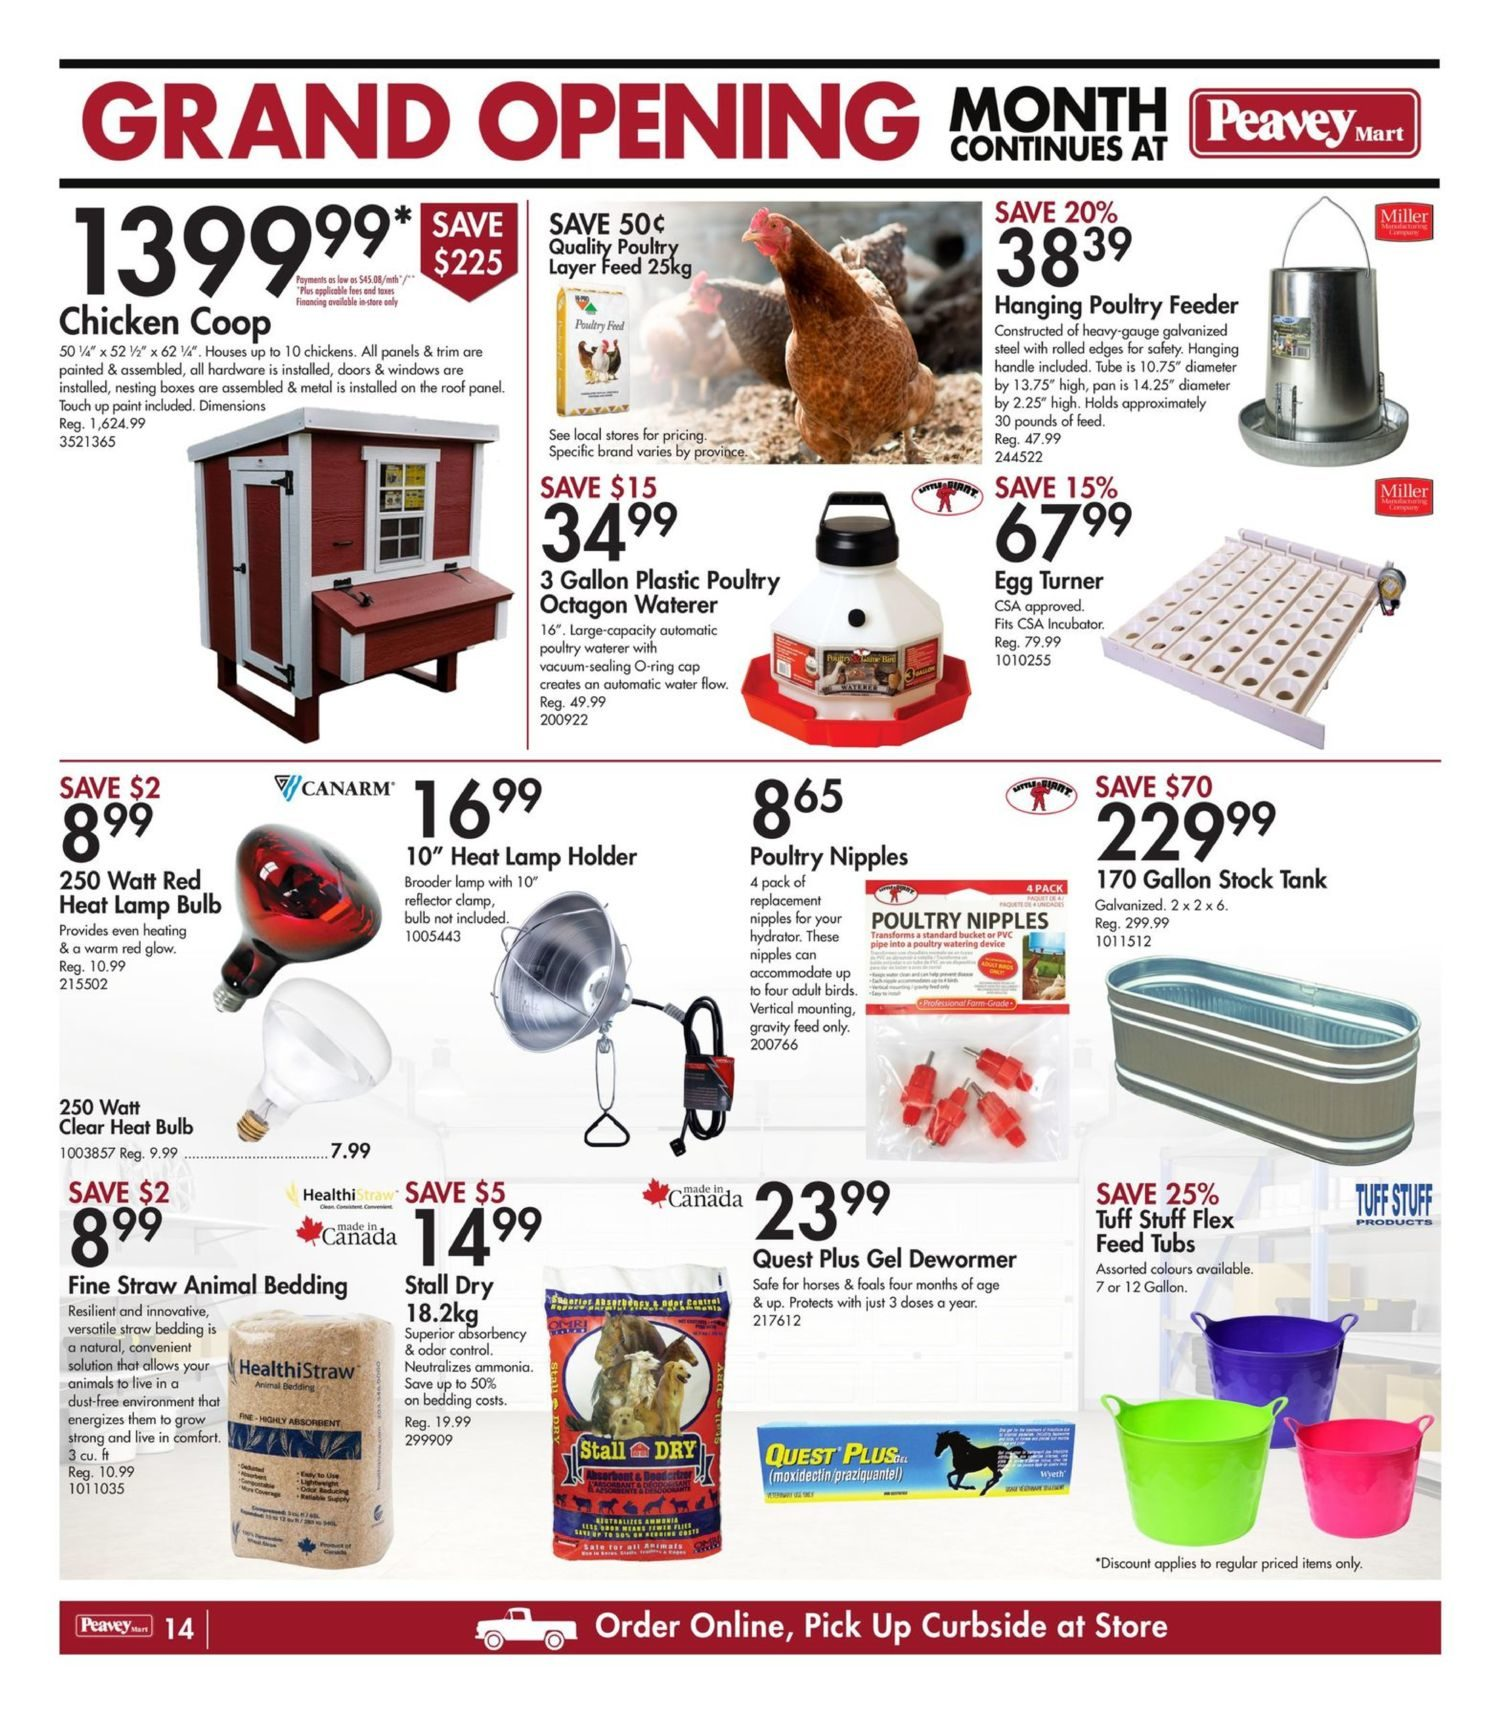 Peavey Mart - Weekly Flyer Specials - National Grand Opening Celebration - Page 17